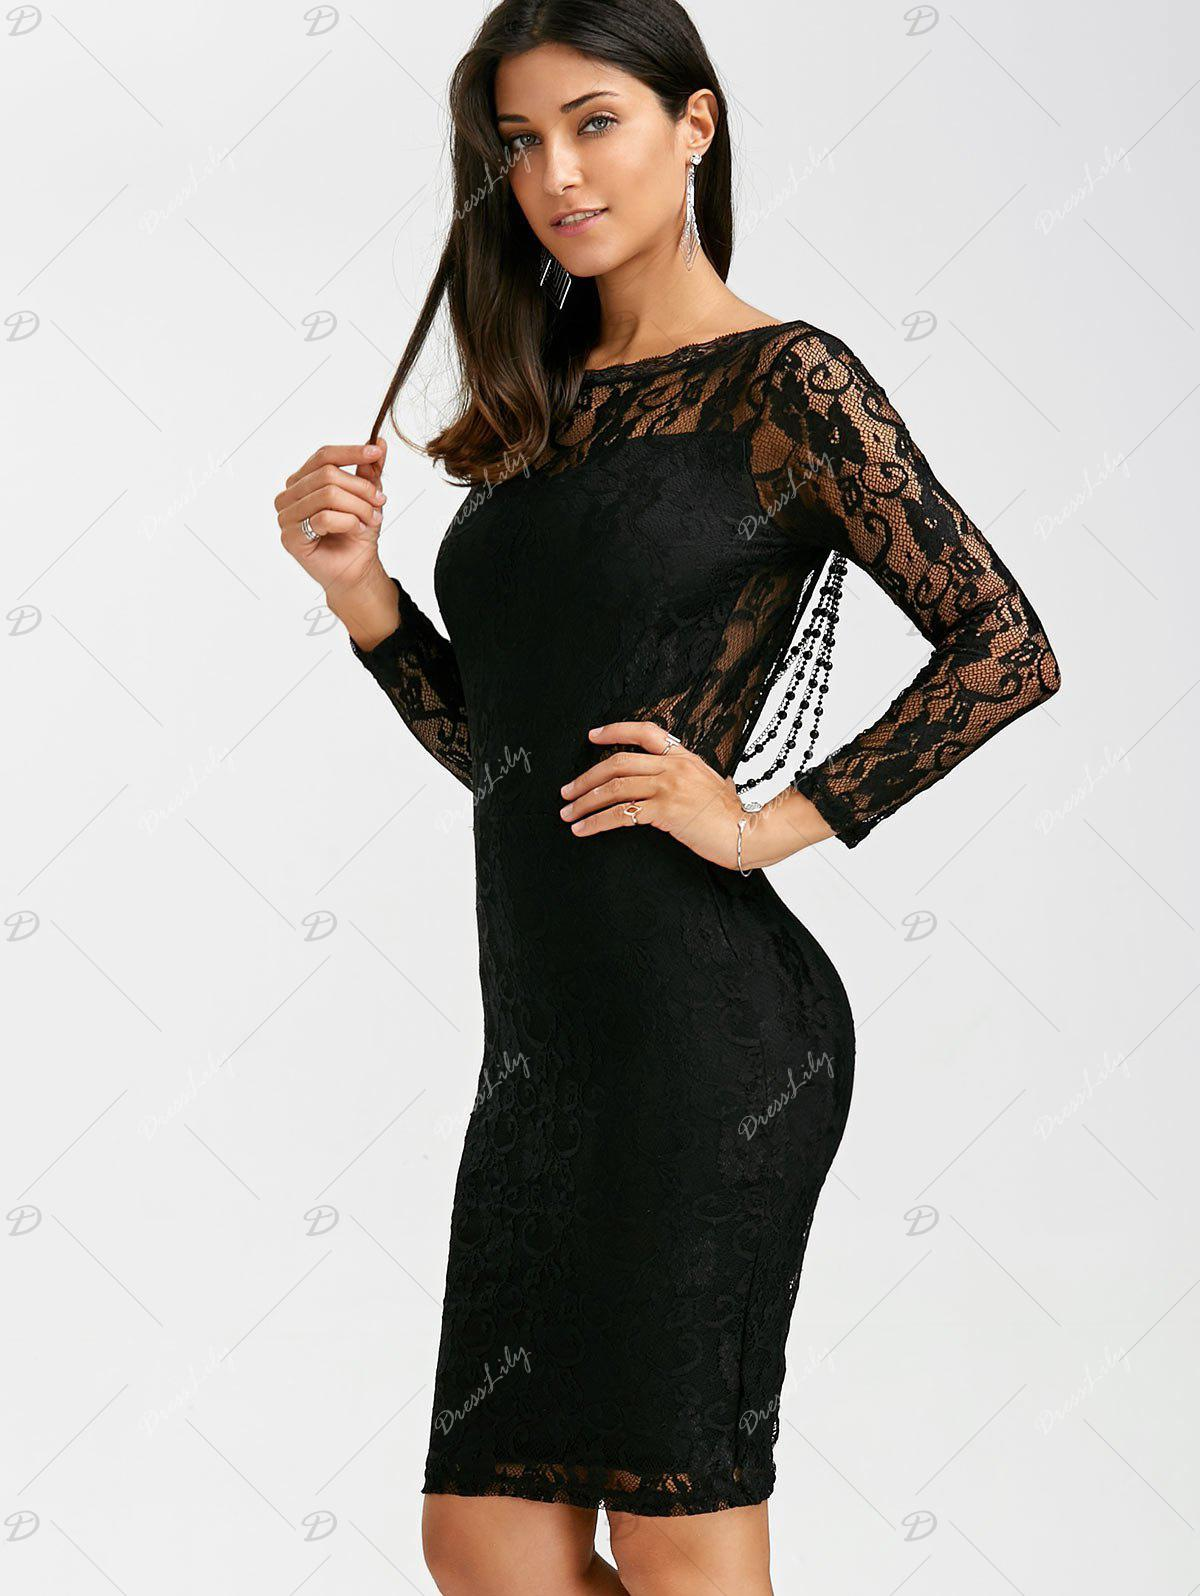 Sexy Long Sleeve Round Neck See-Through Backless Slimming Women's Dress - BLACK M